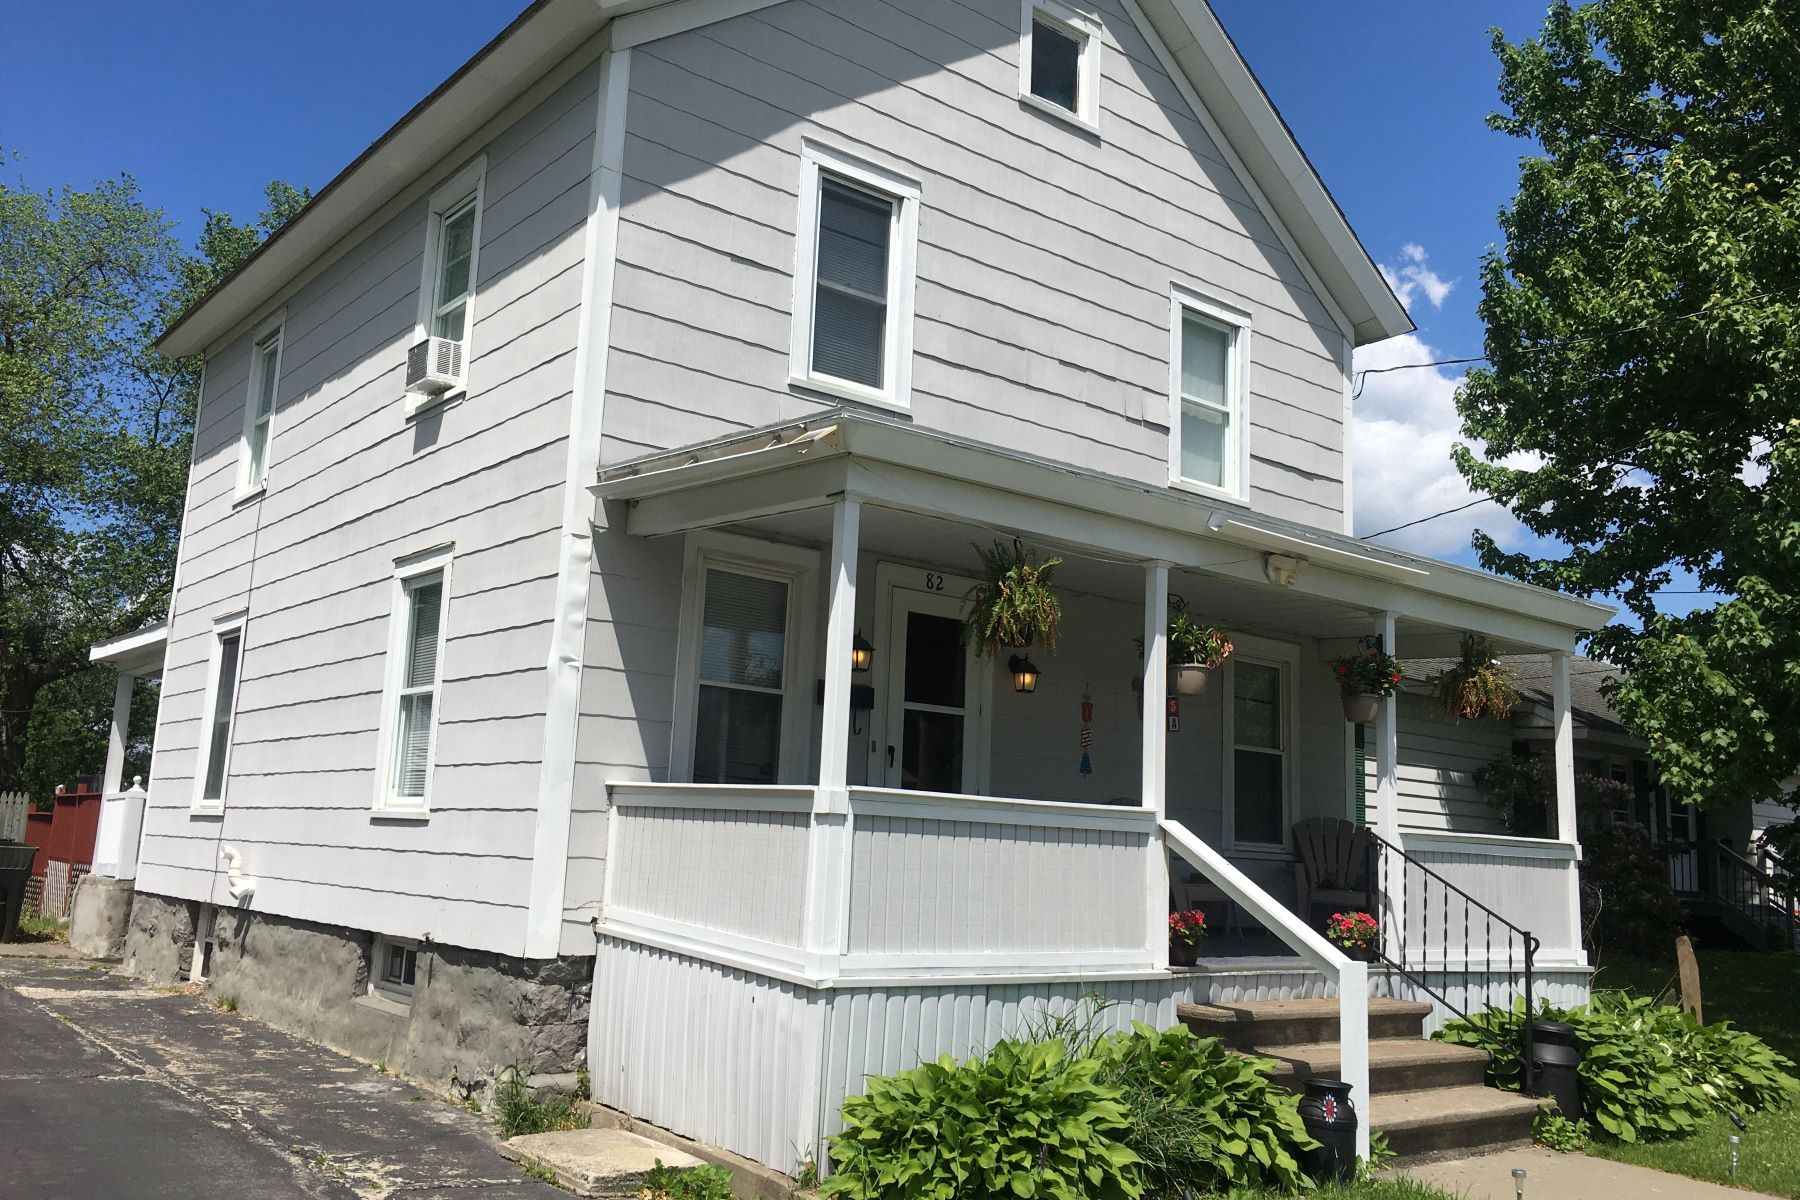 Single Family Homes for Sale at 82 Prospect Street, Glens Falls, NY 12801 82 Prospect Street Glens Falls, New York 12801 United States